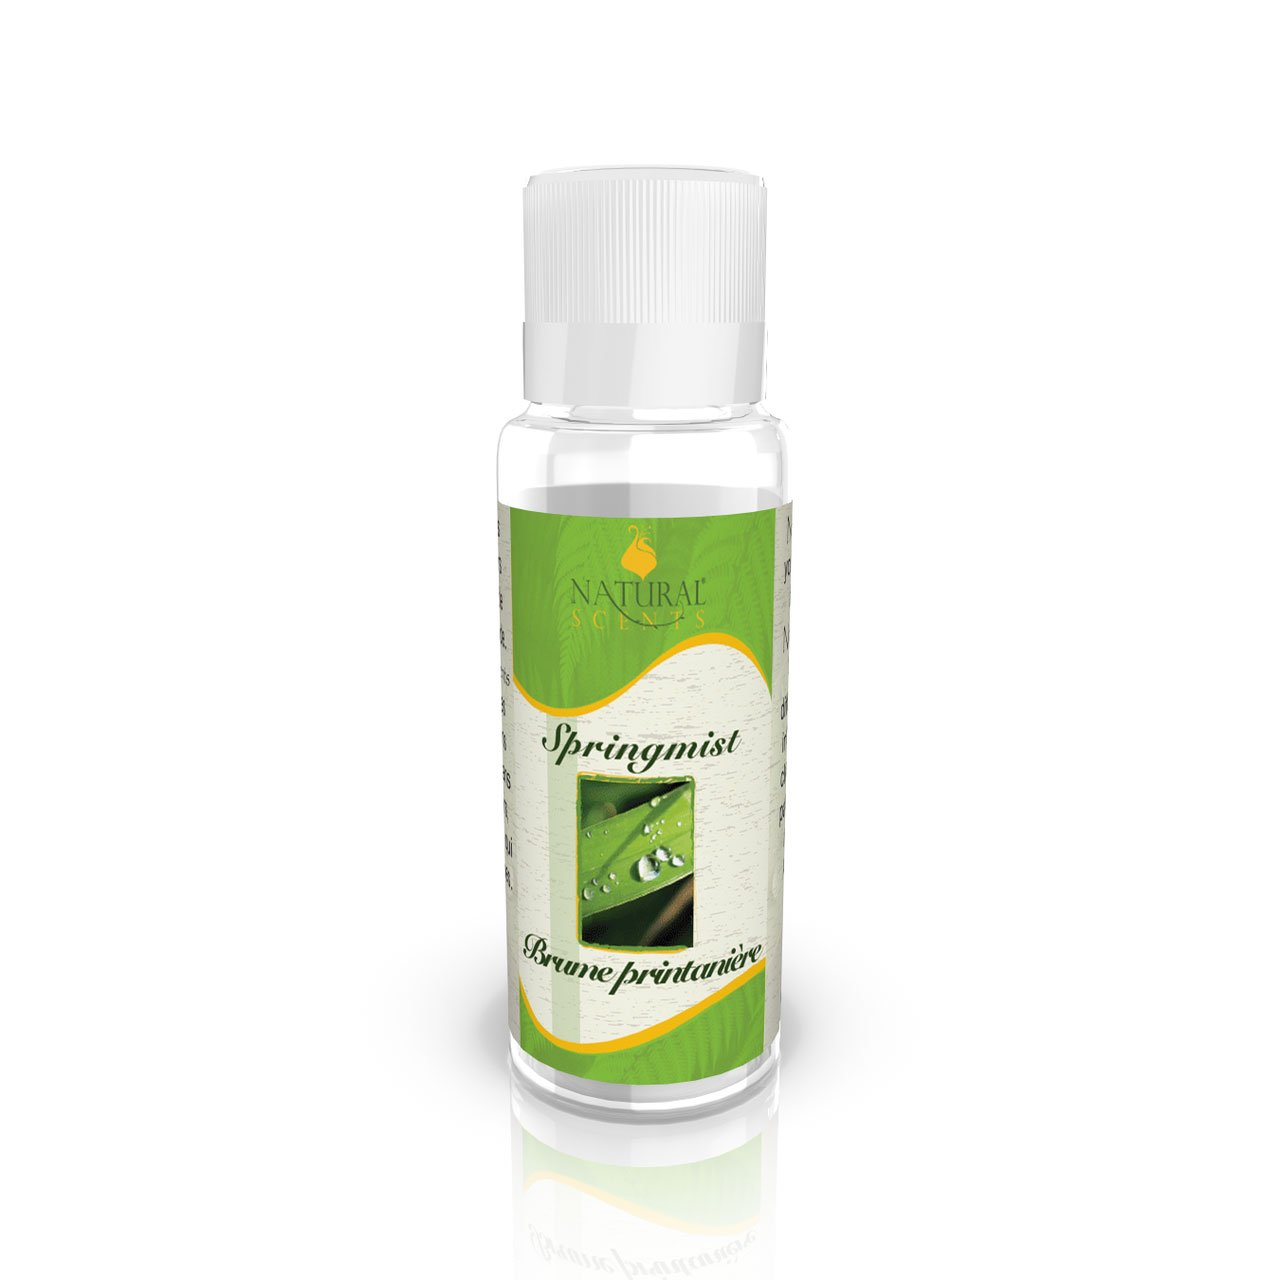 Springmist essential oils